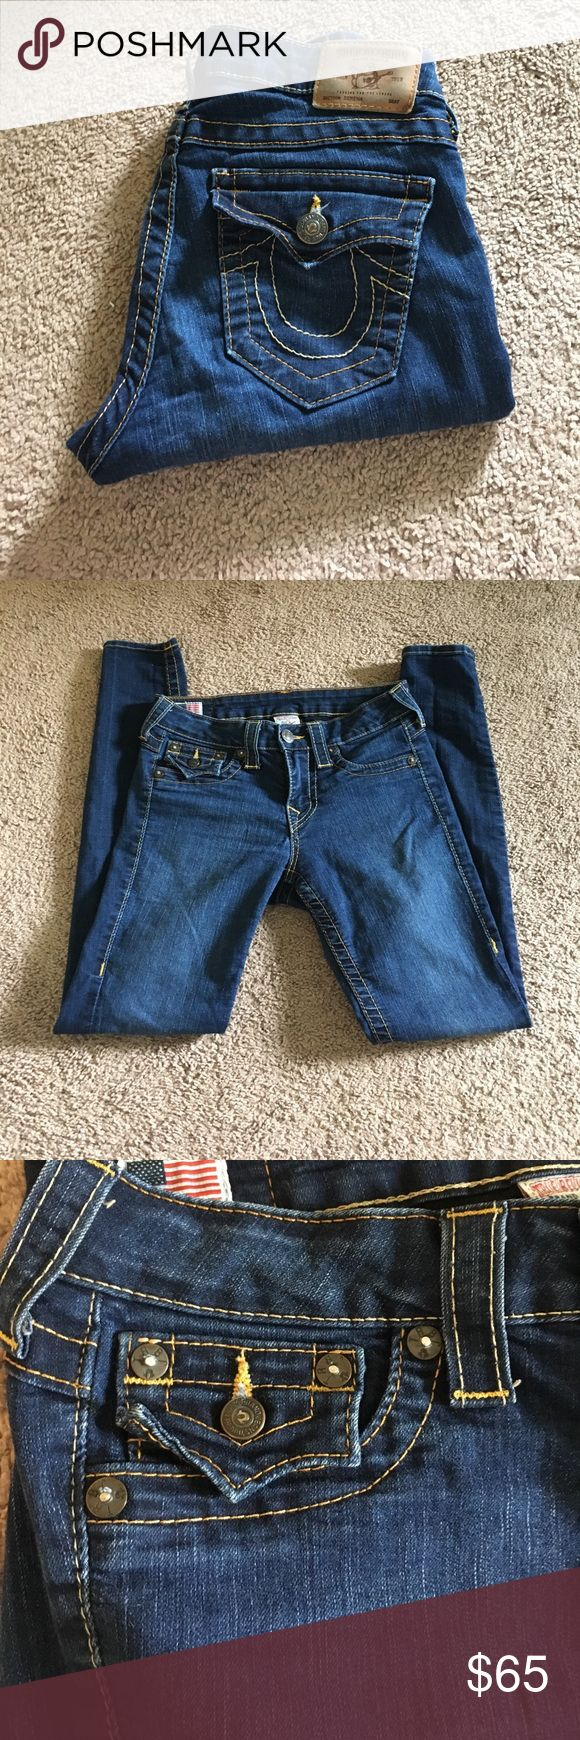 True Religion Jean Leggings True Religion Jean Leggings, size 27, gently used, skinny ankle cut, machine washed and air dried only, also coming from pet and smoke free environment. Will accept offers, but please no low ballers. True Religion Jeans Skinny